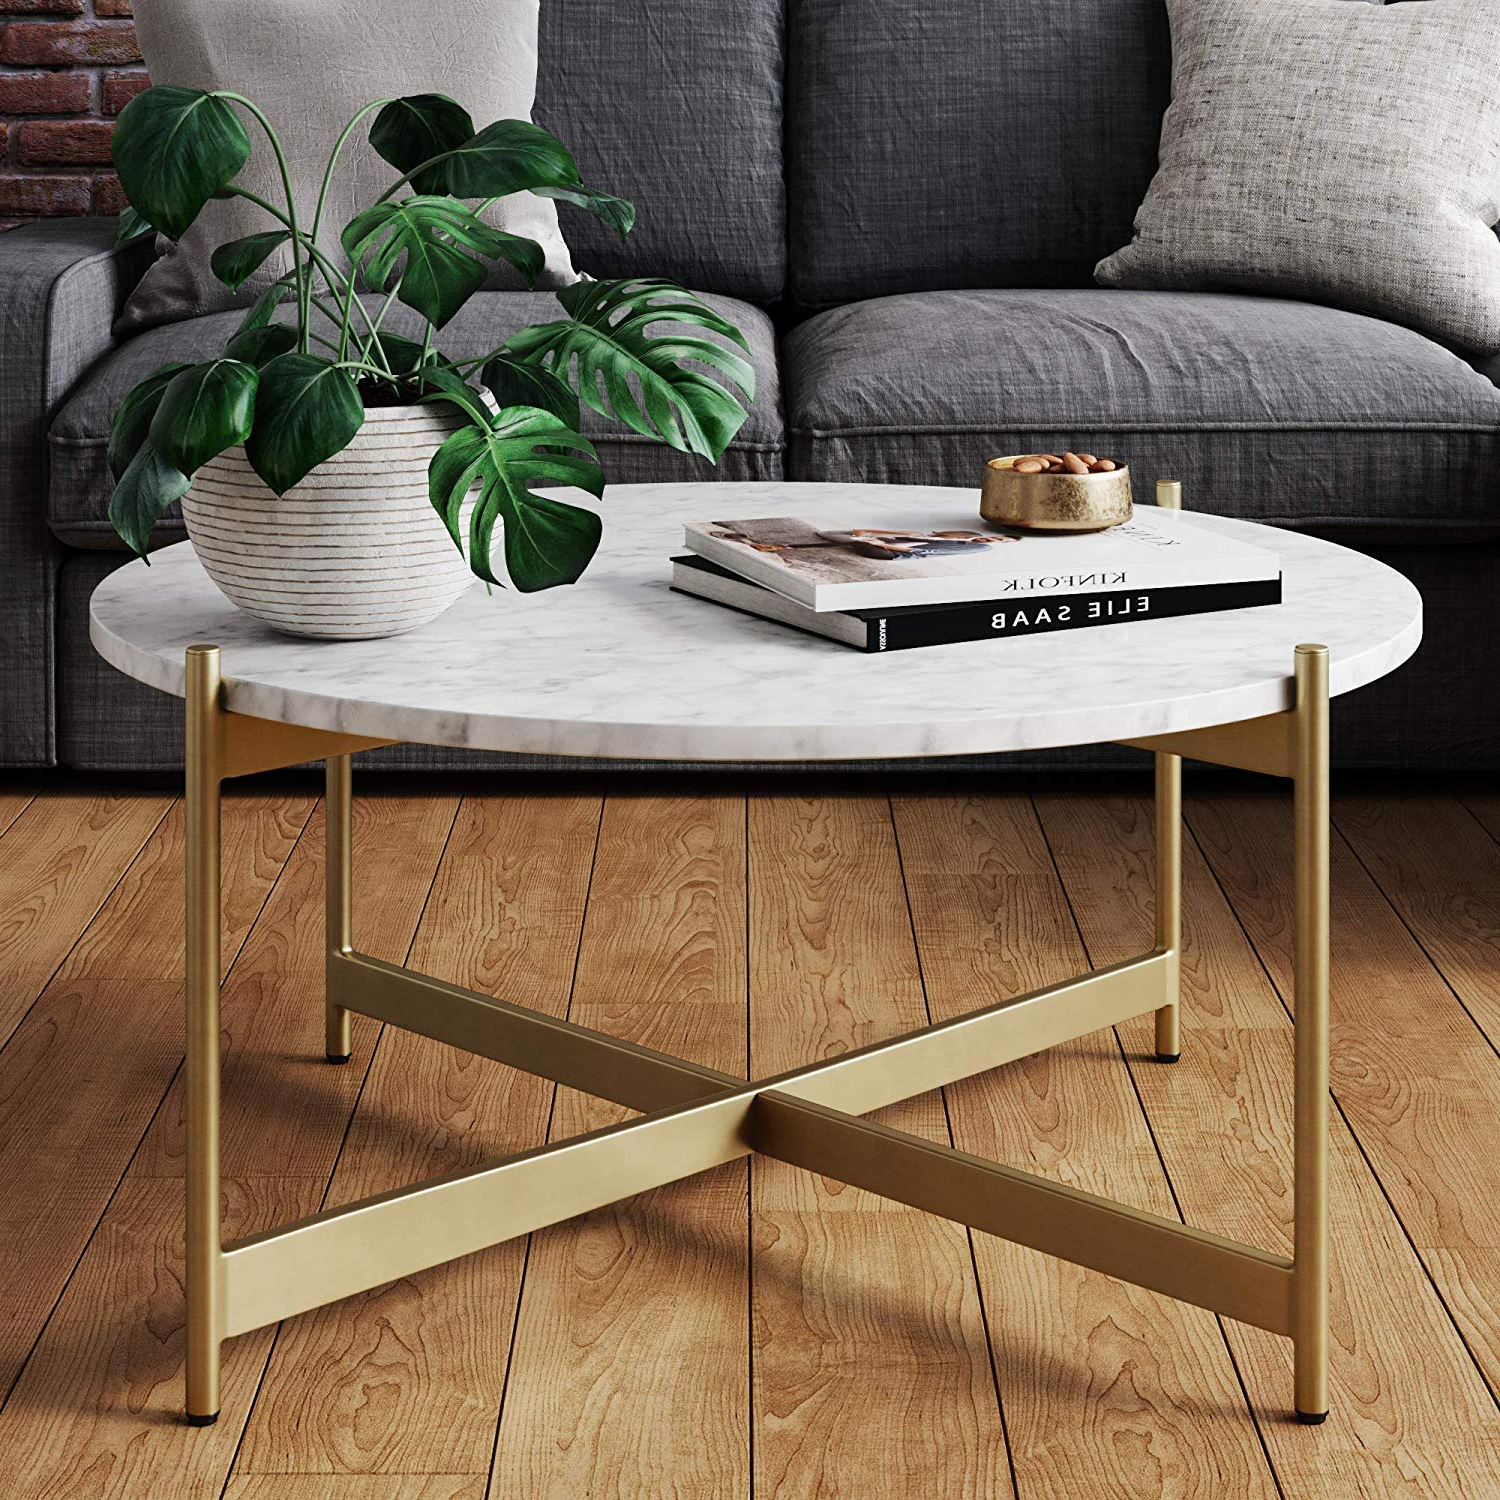 Faux Marble Finish Metal Contemporary Dining Tables With Current Nathan James Piper Faux Marble Round Modern Living Room Coffee Table With  Brass Metal Frame, Gold (Gallery 5 of 30)